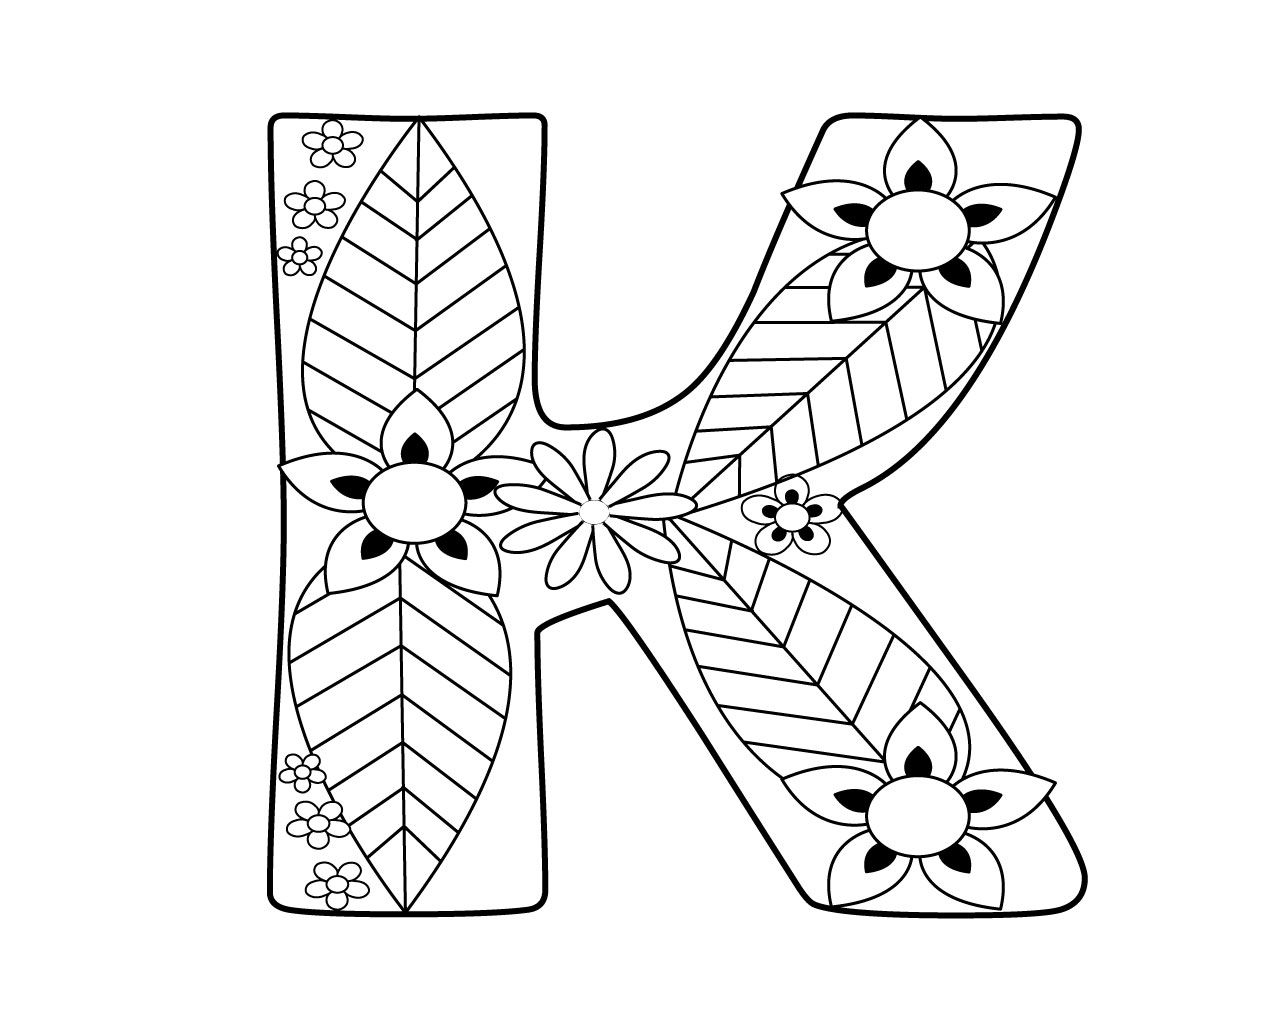 Letter K Coloring Pages for Adults Free printable